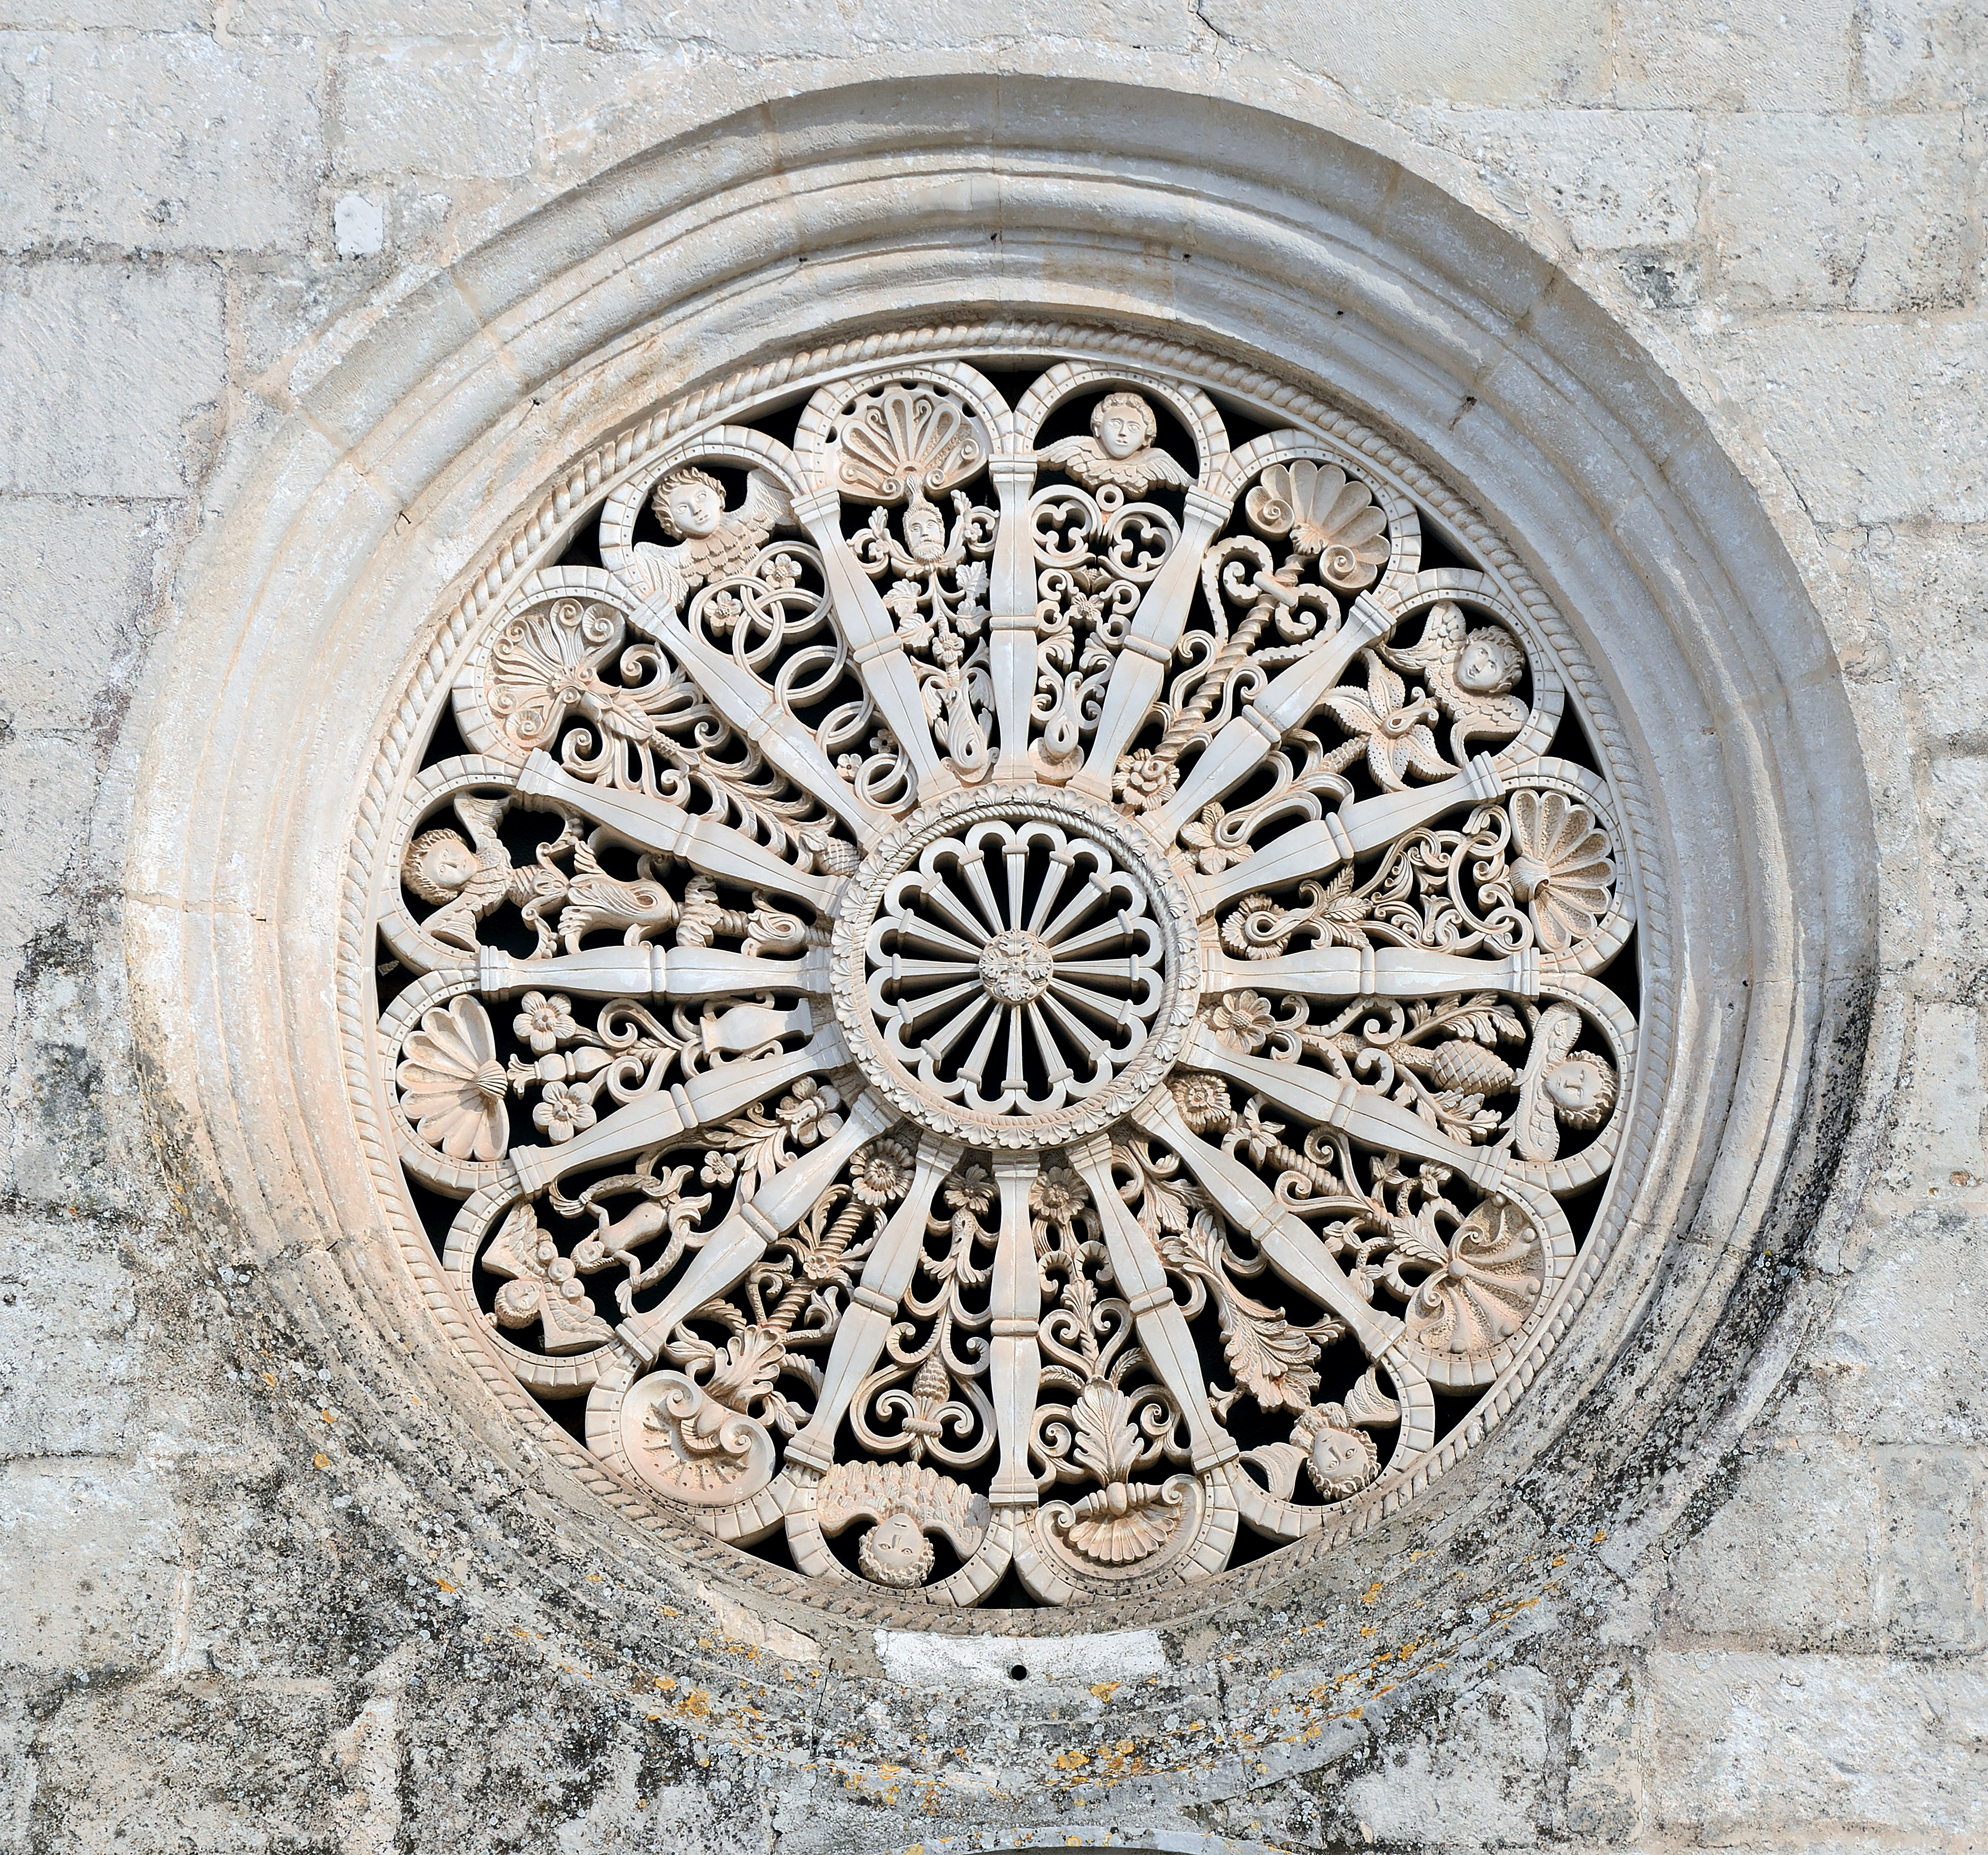 Rose window on Madonna della Greca in Locorotondo